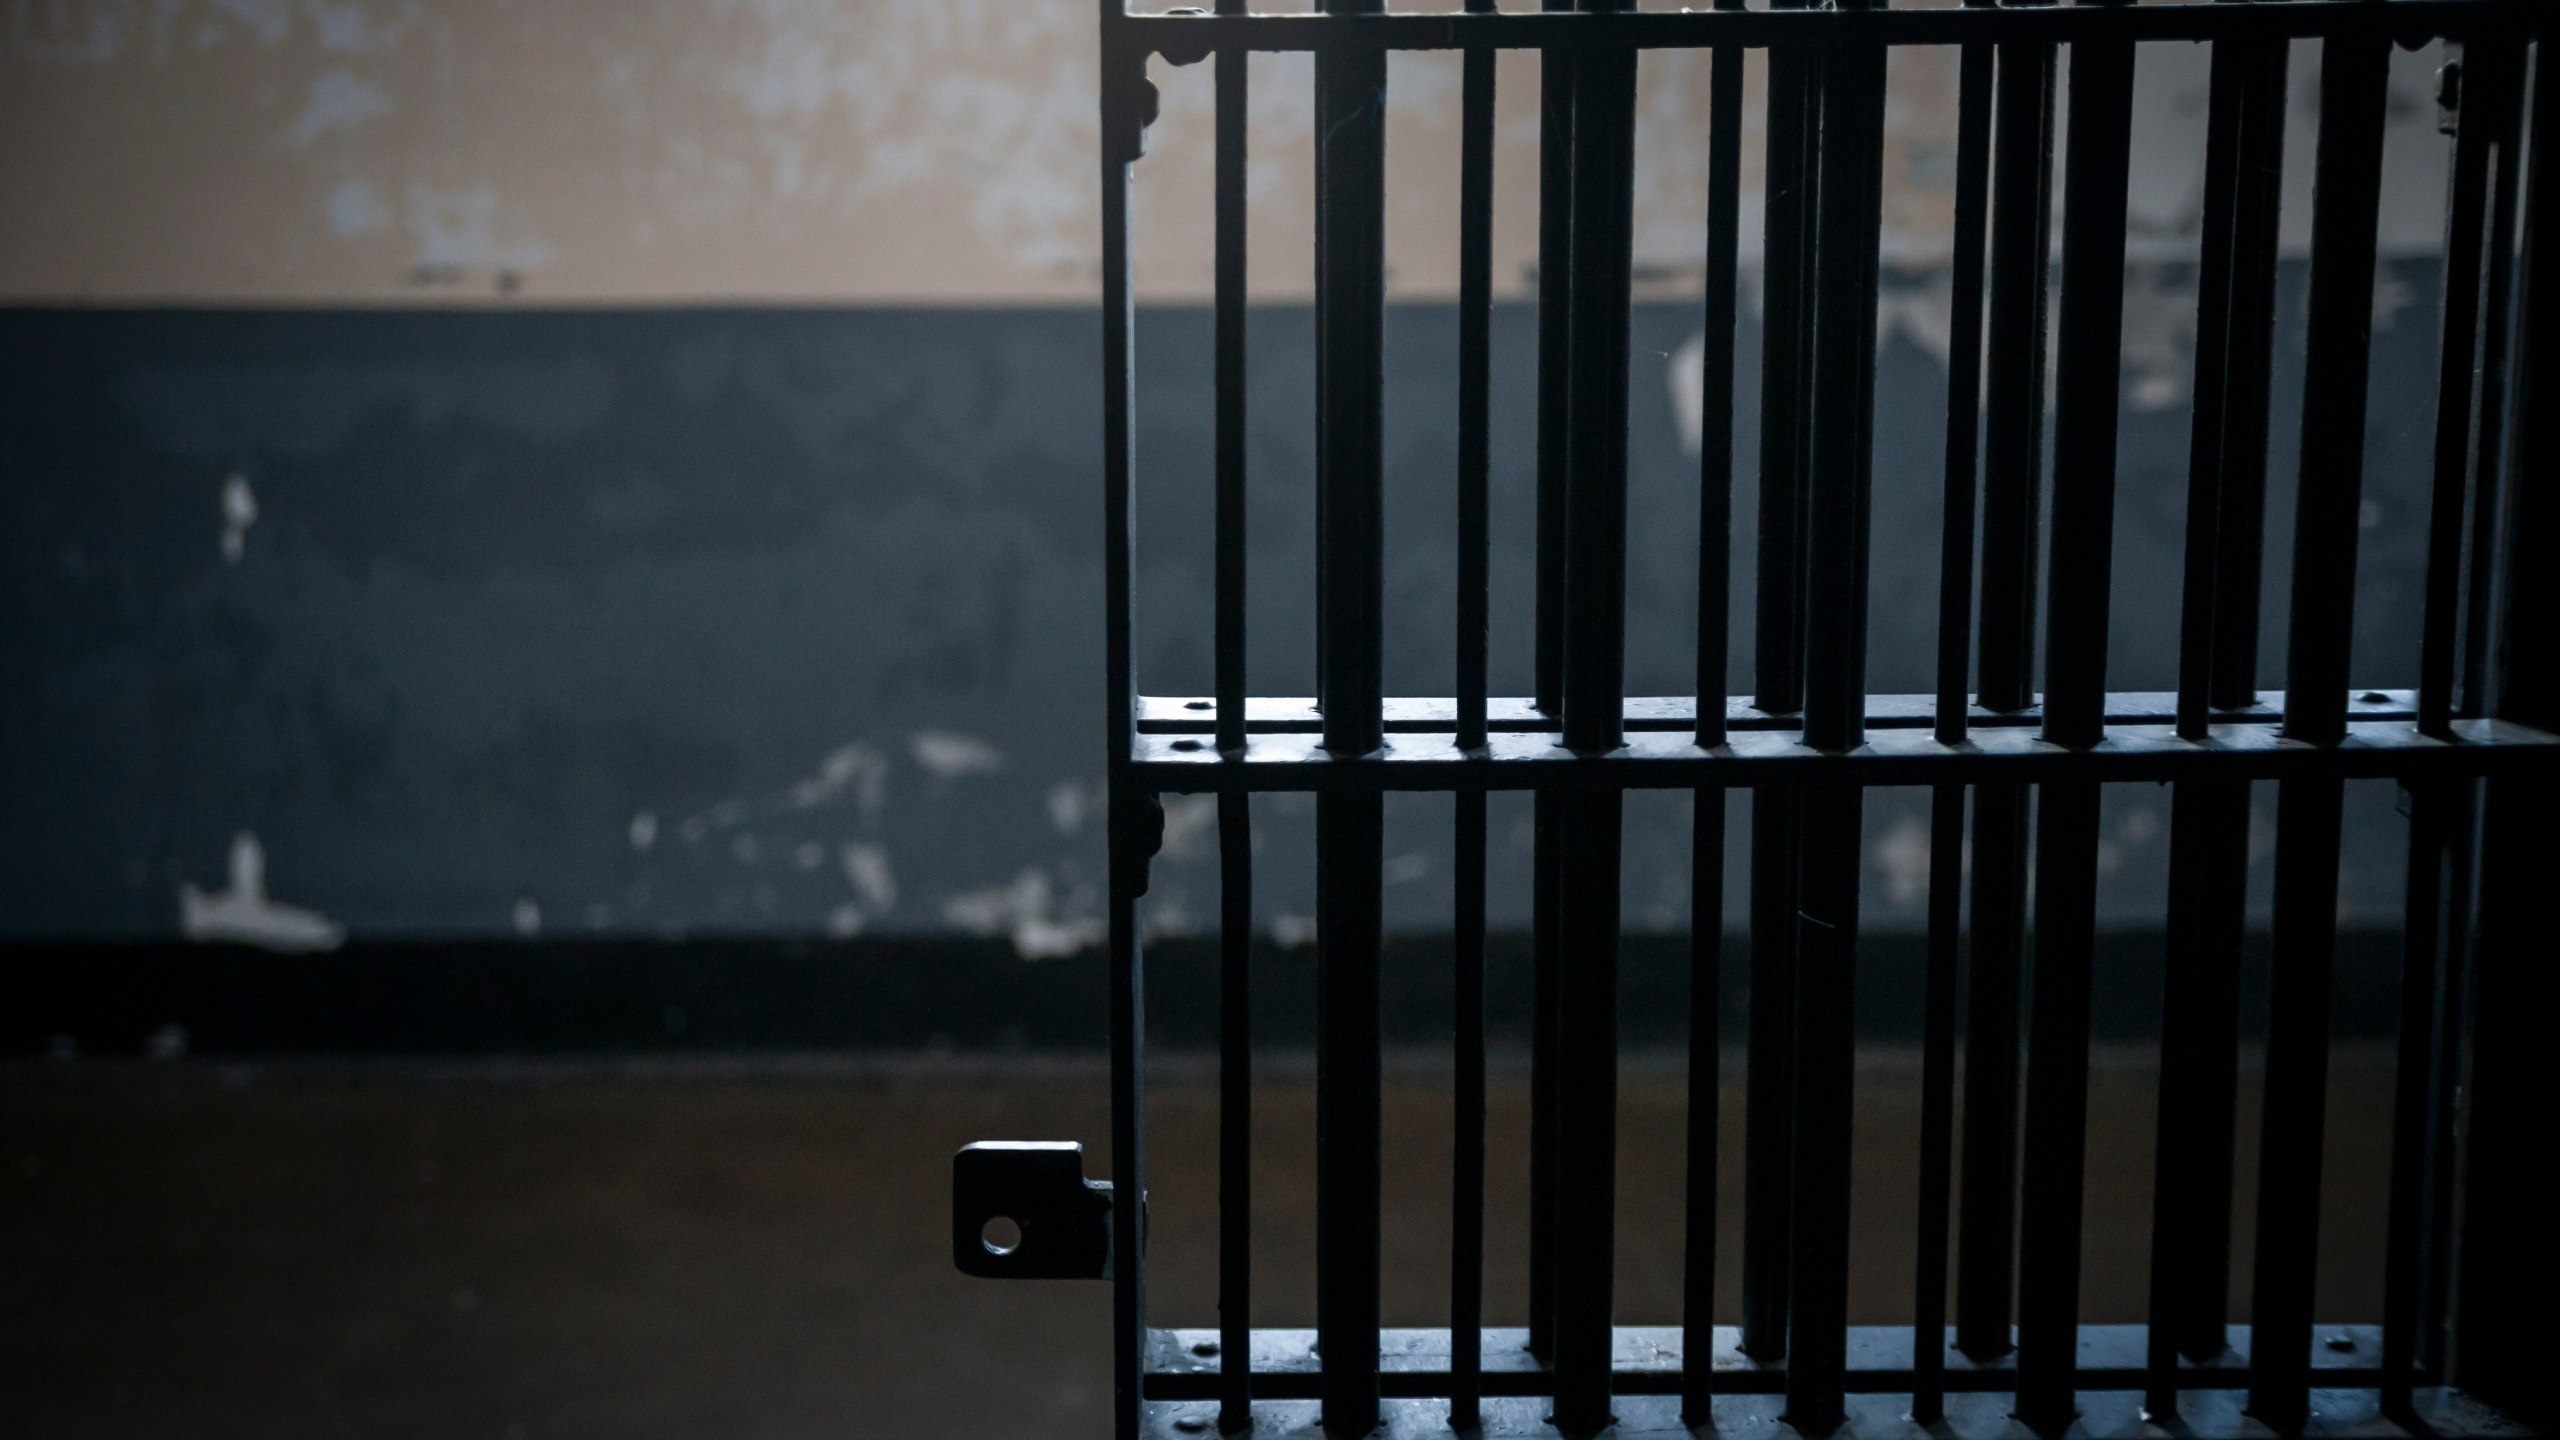 A prison cell is seen in this file photo from Getty Images.